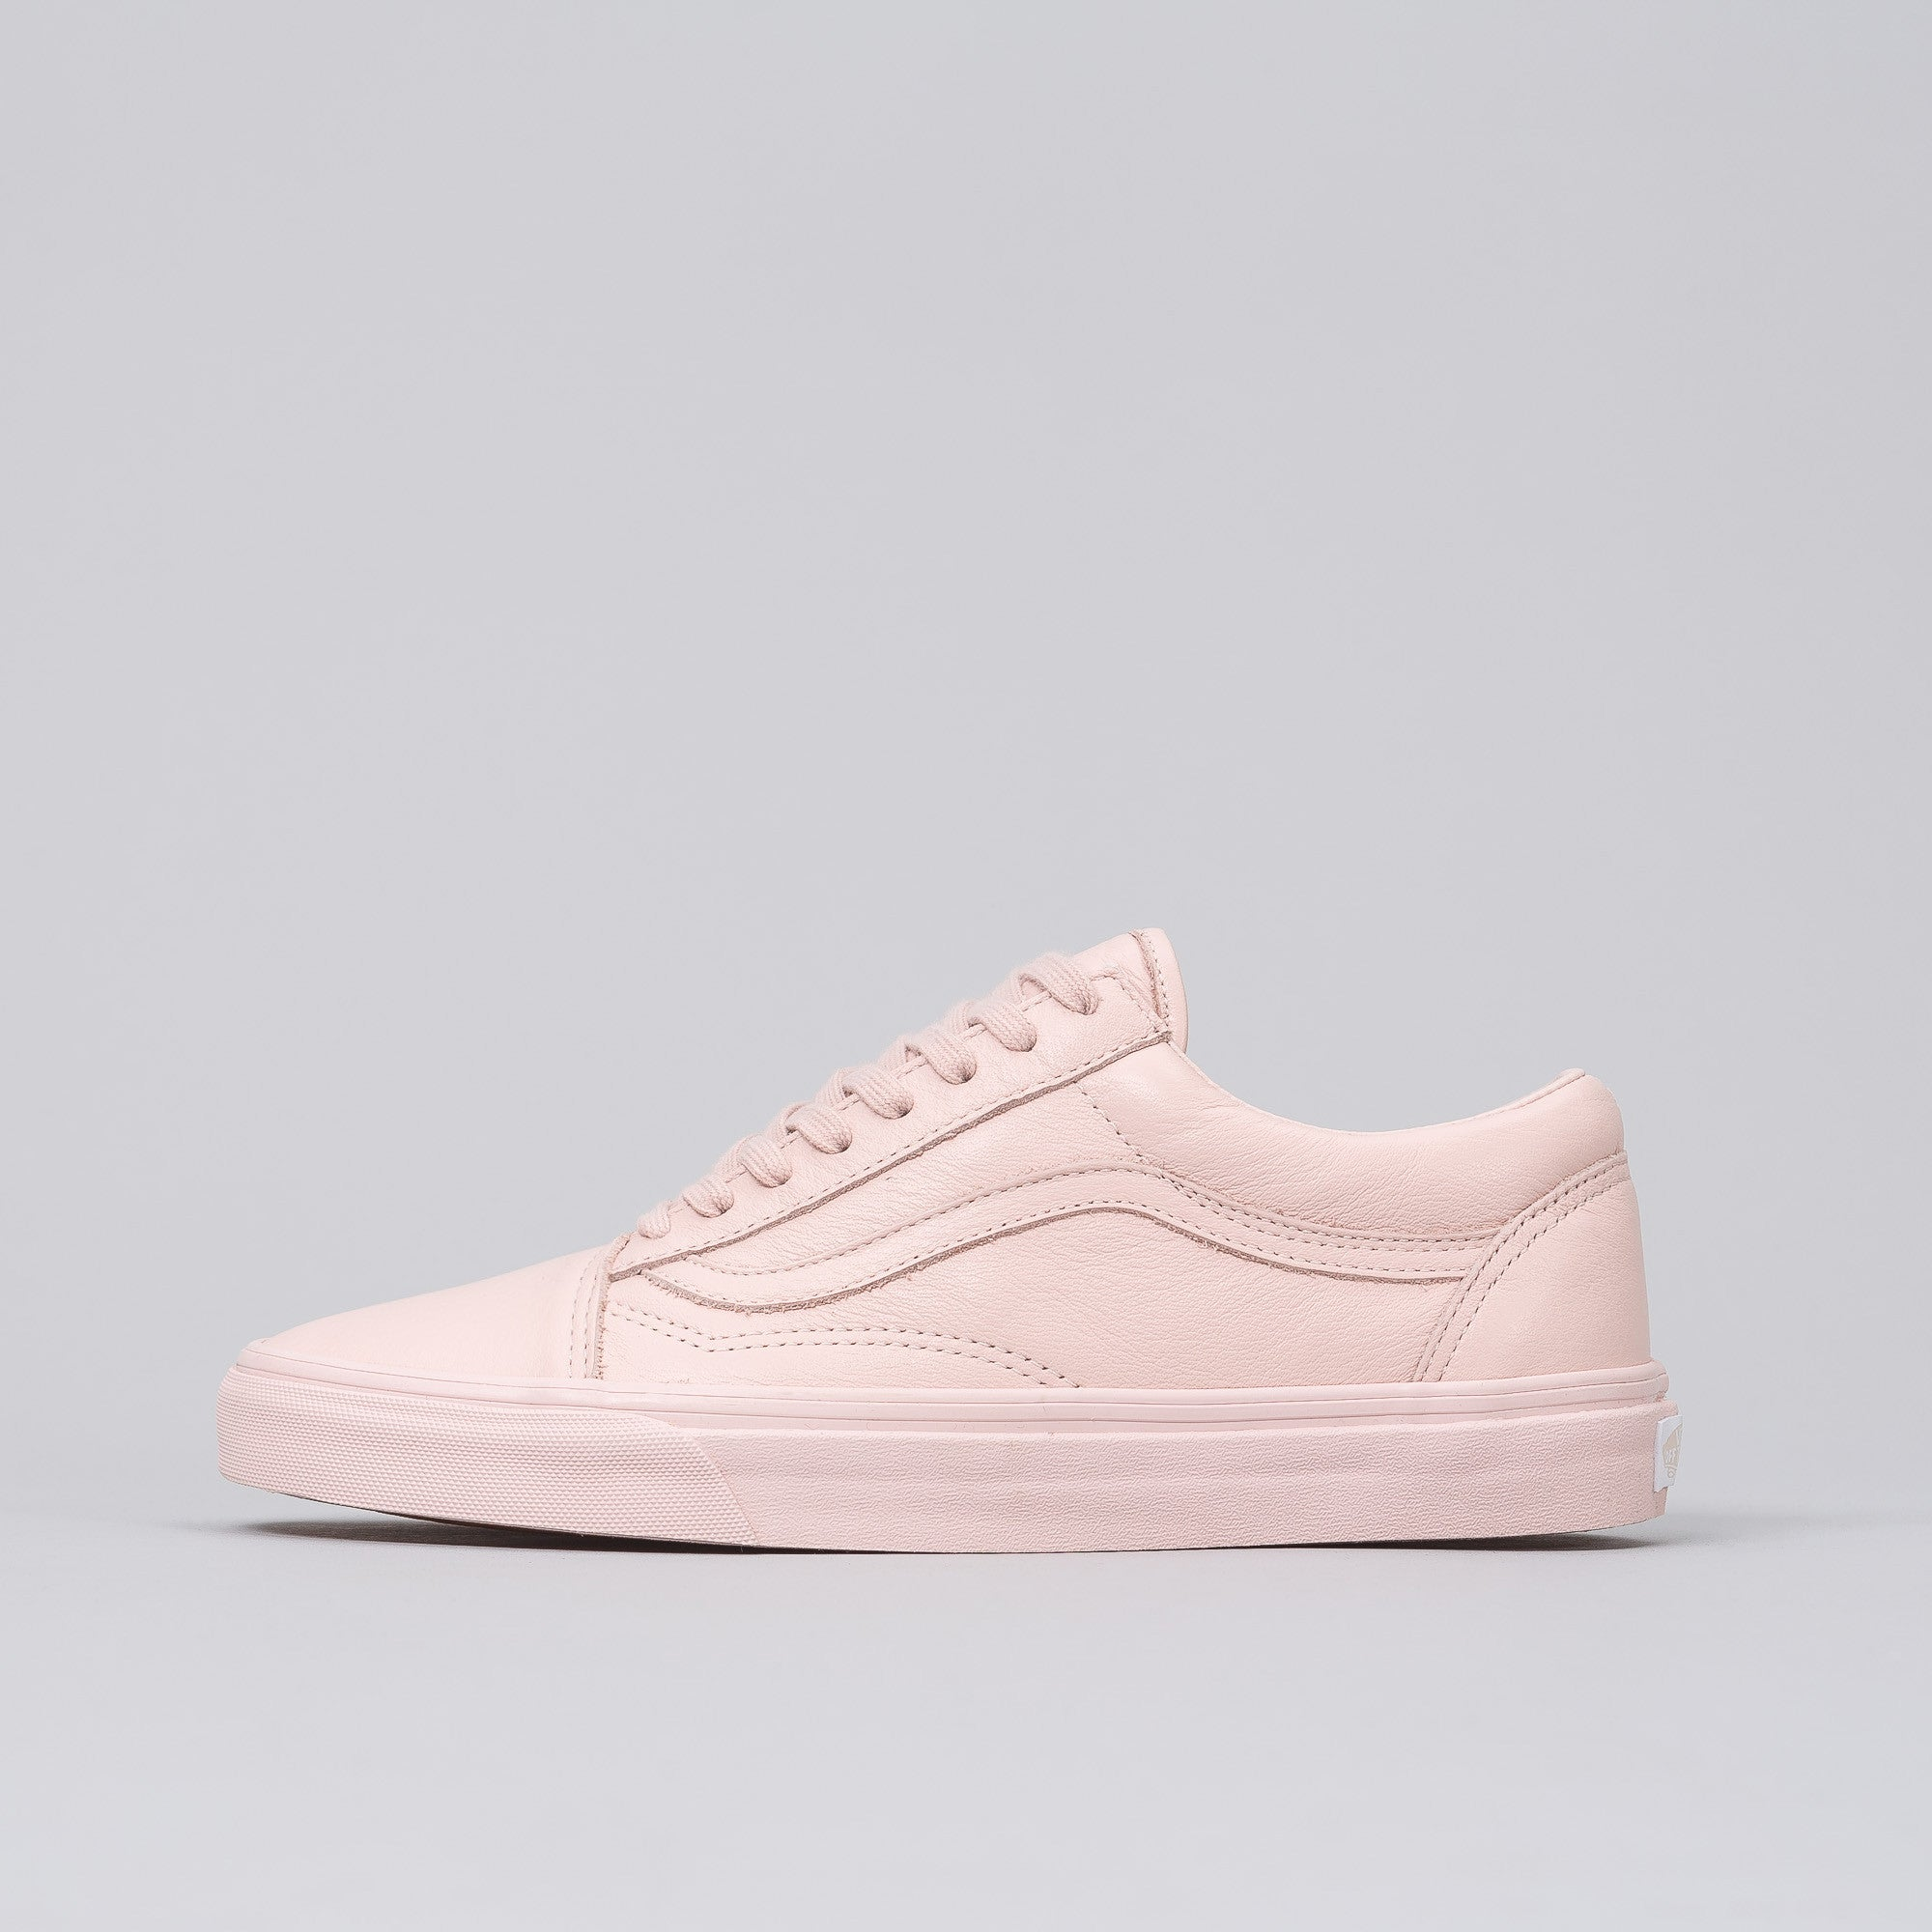 Old Skool Mono Leather in Sepia Rose